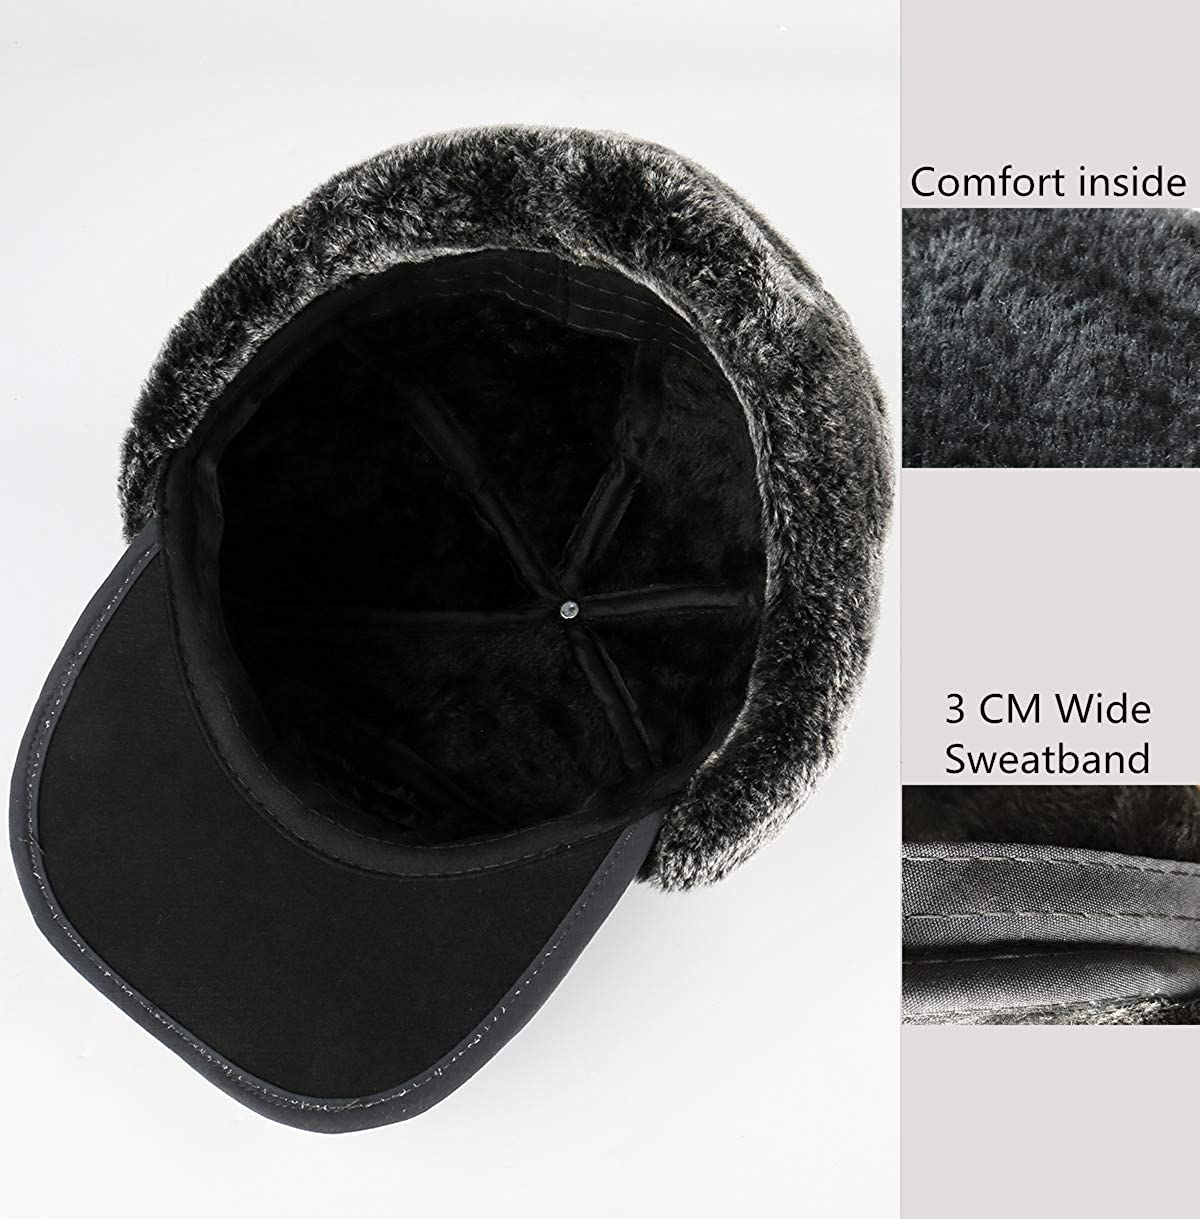 03f6712128a Yooeen Unisex Warm Winter Trapper Trooper Hat Mens Classic Winter Faux Fur Bomber  Hats with Ear Flap and Windproof Mask Snow Ski Outdoor Sport Hat Hunting ...